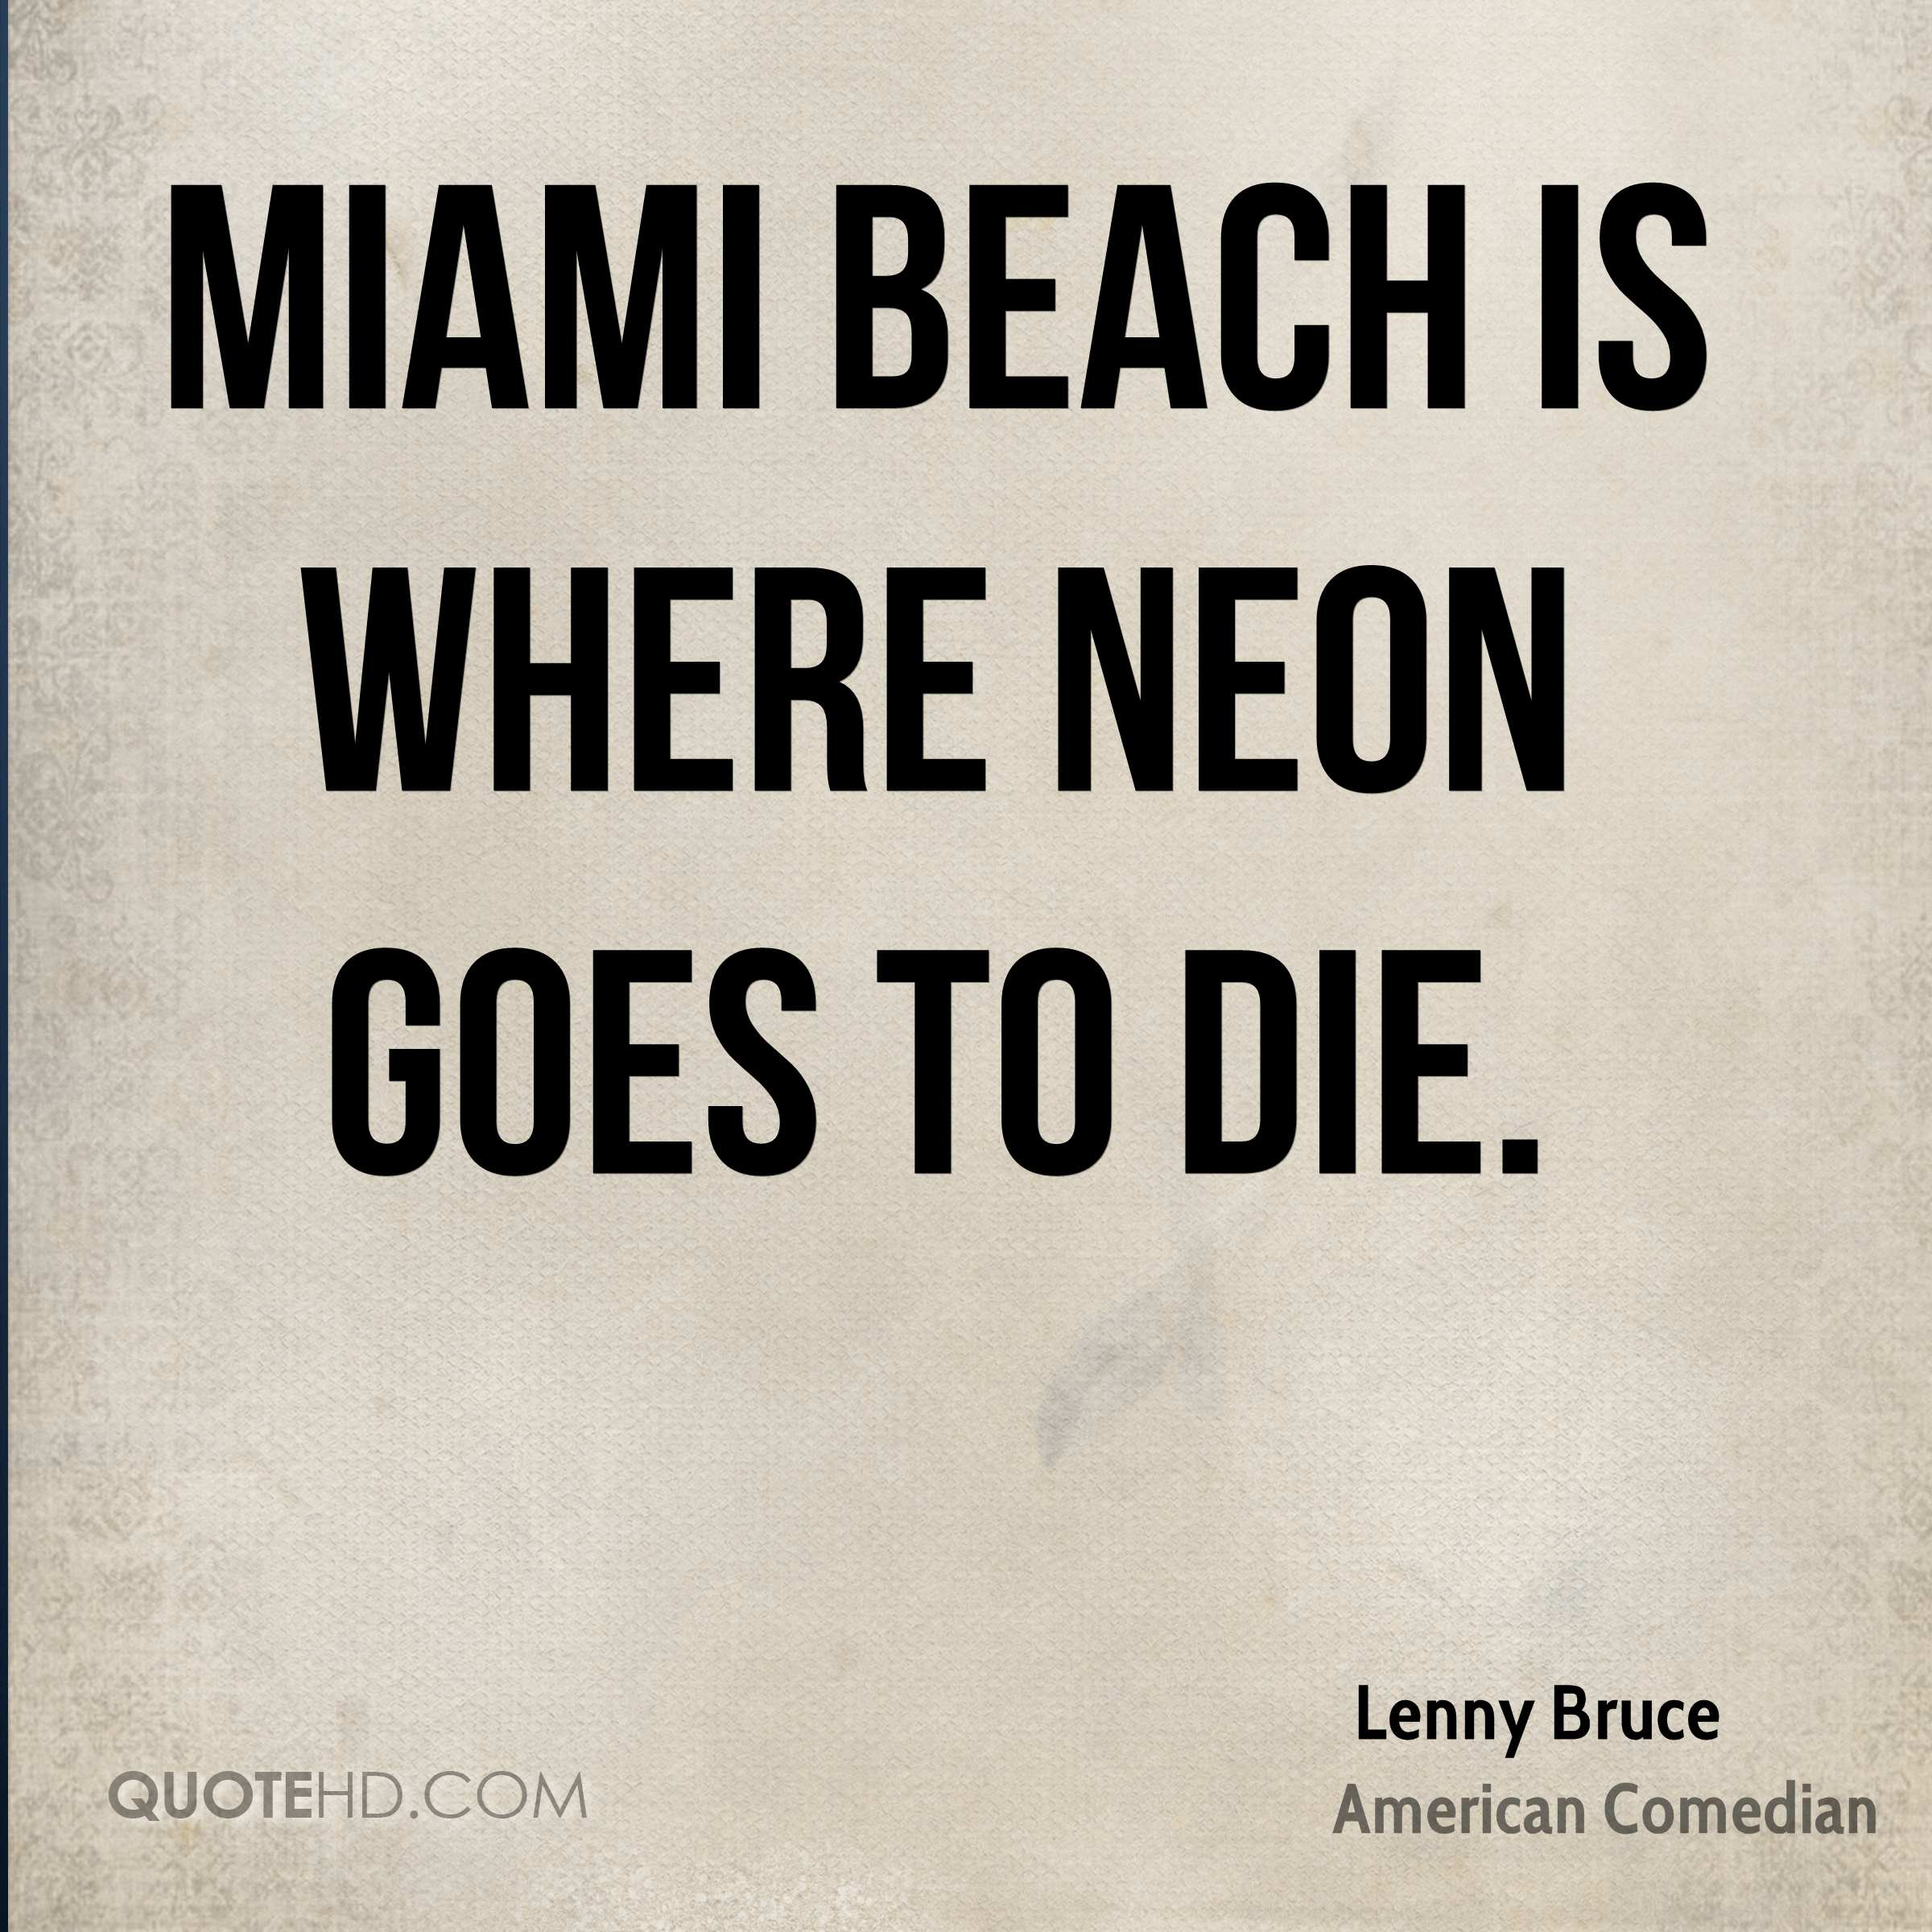 Lenny Bruce Funny Quotes | QuoteHD